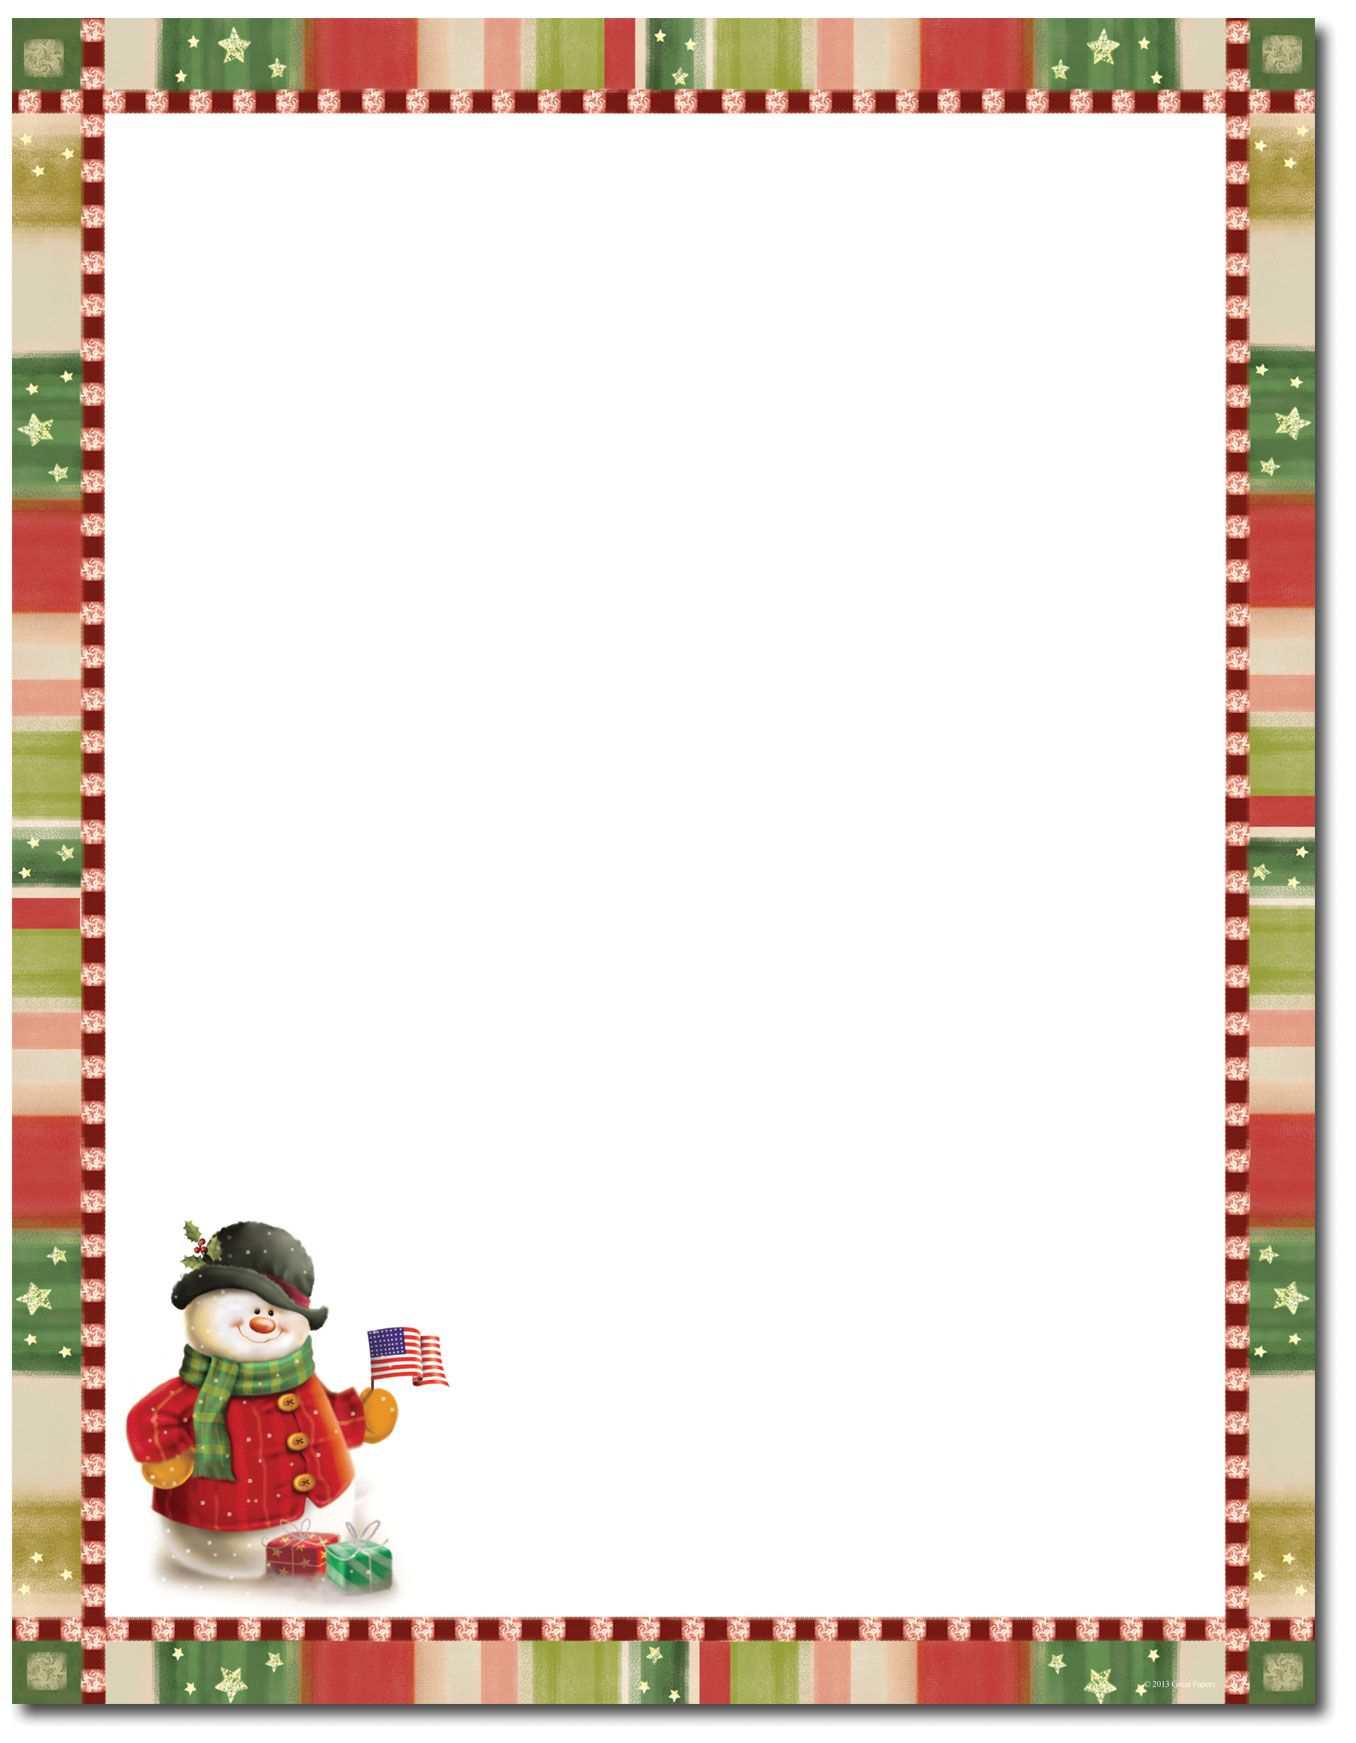 Patriotic Snowman Letterhead | Christmas Stationery | Christmas - Free Printable Snowman Stationery